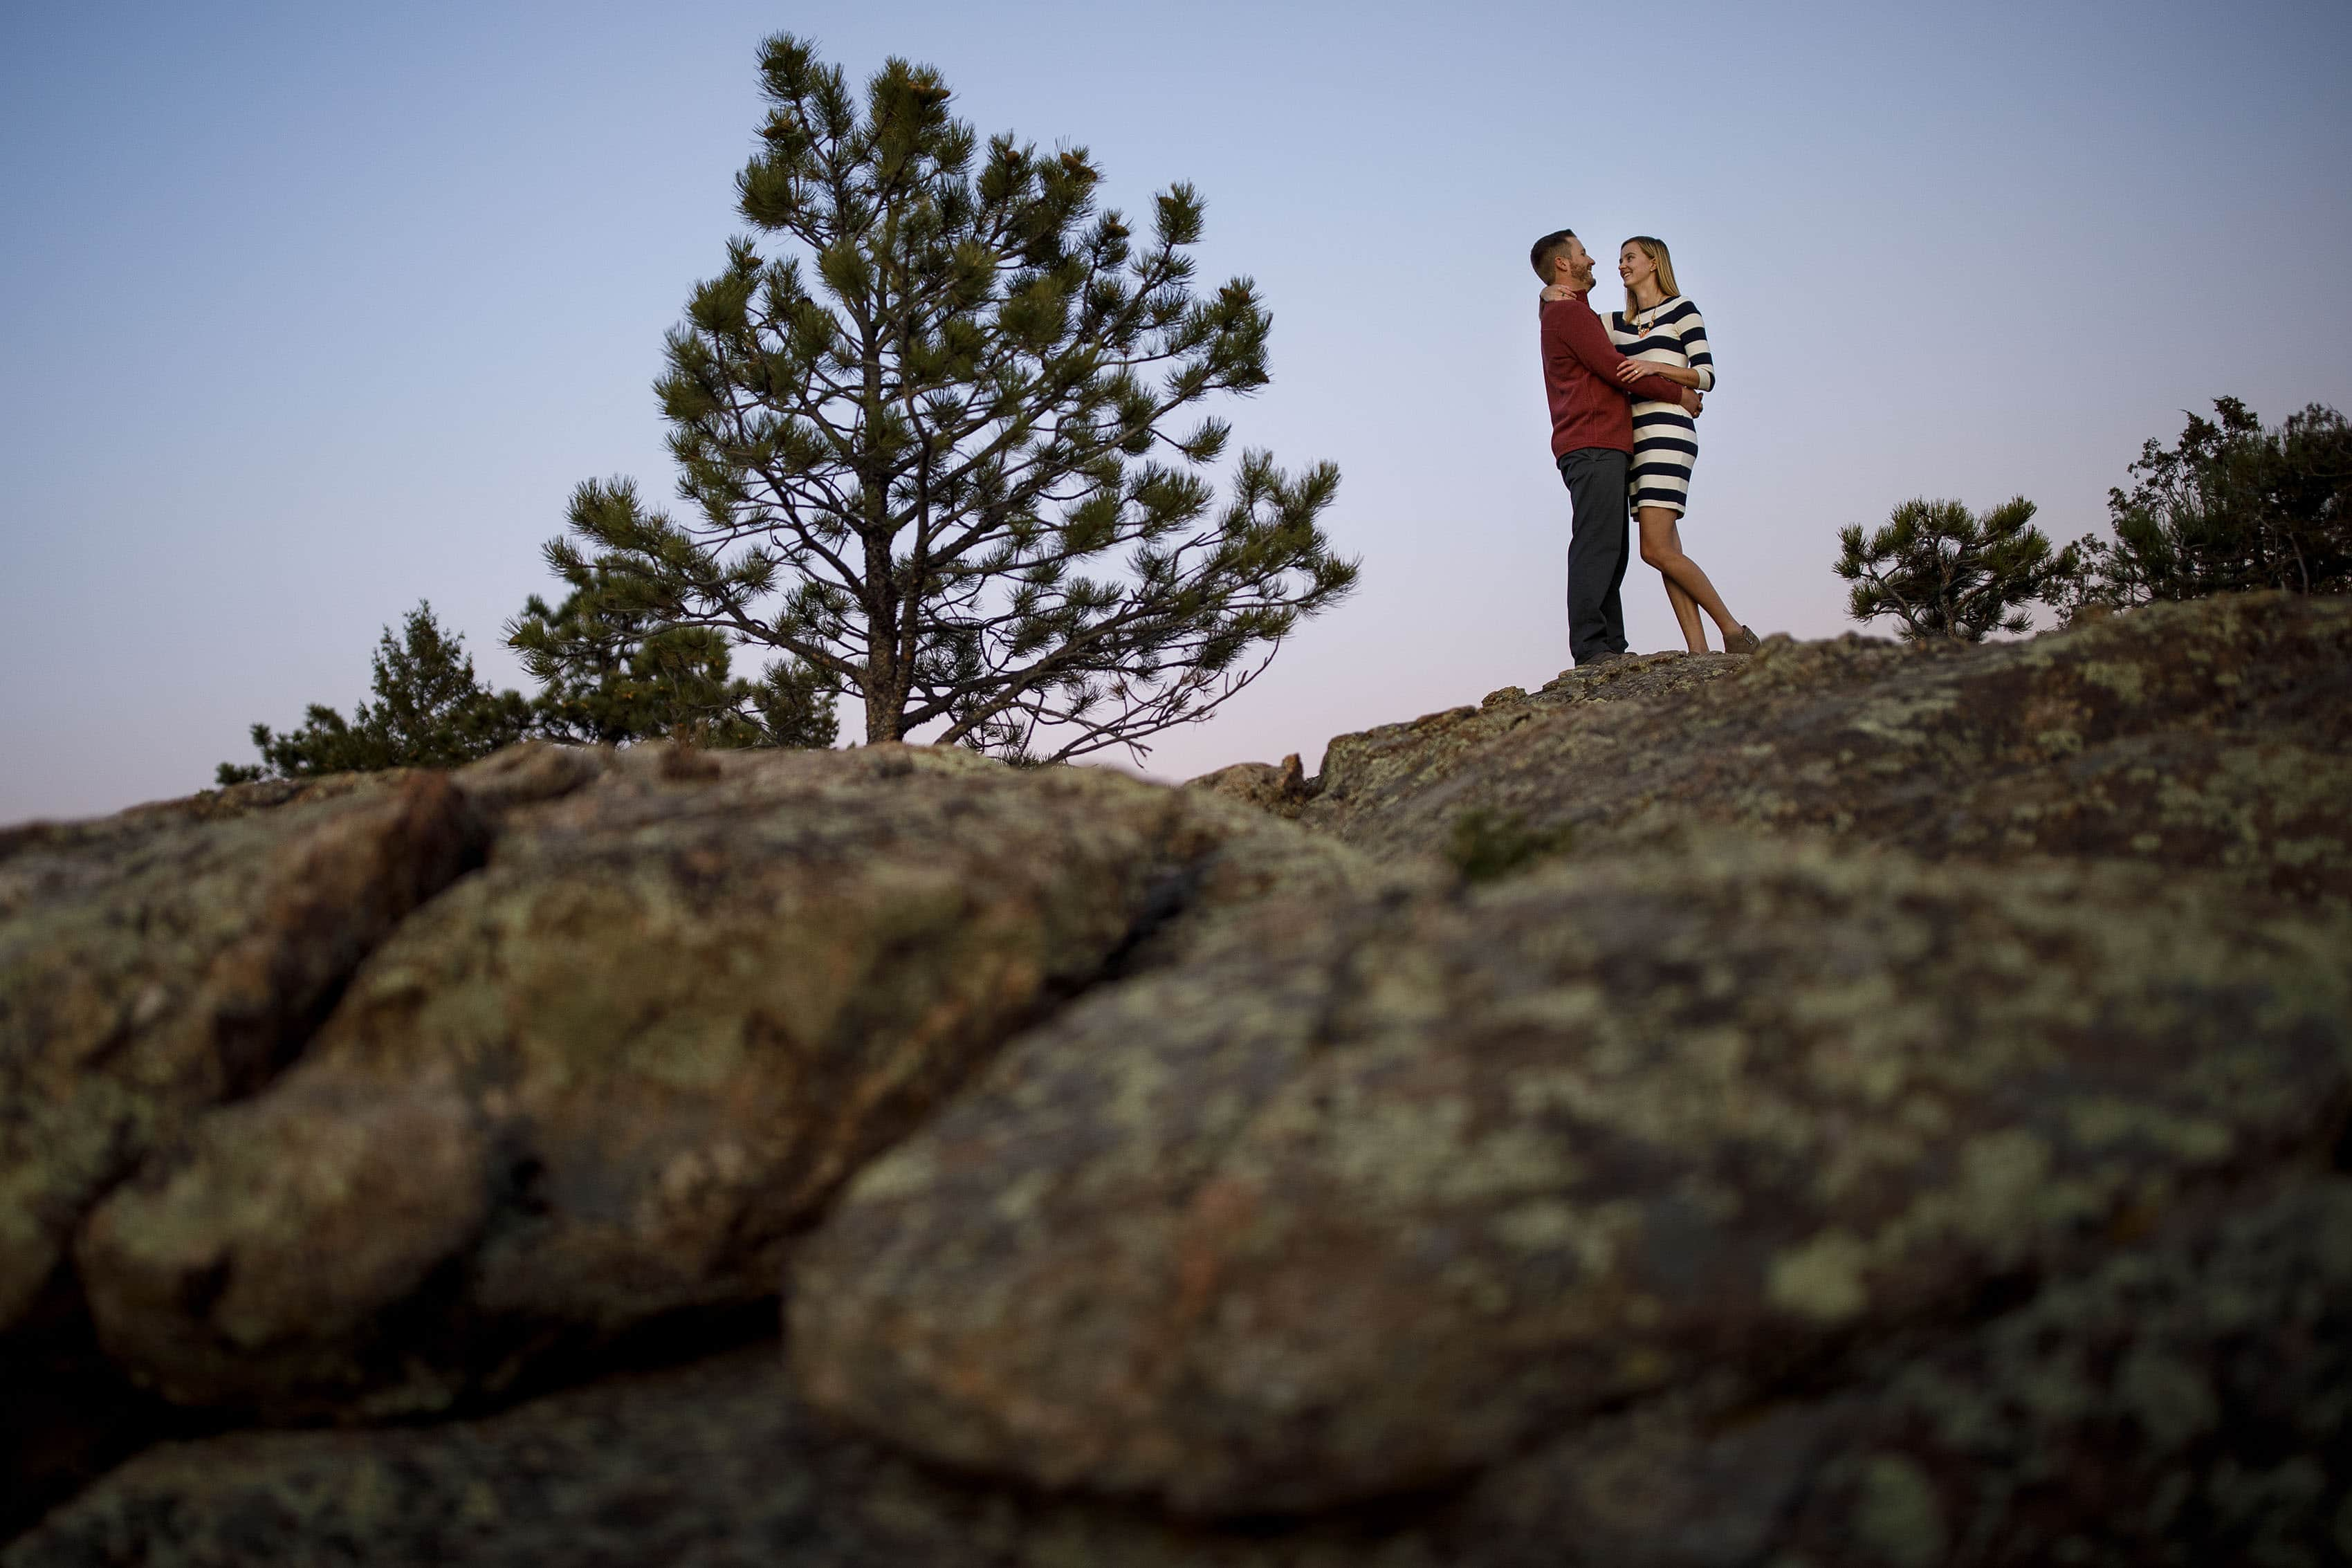 Jennifer and Stefan embrace on a rock during twilight at Alderfer Three Sisters Park